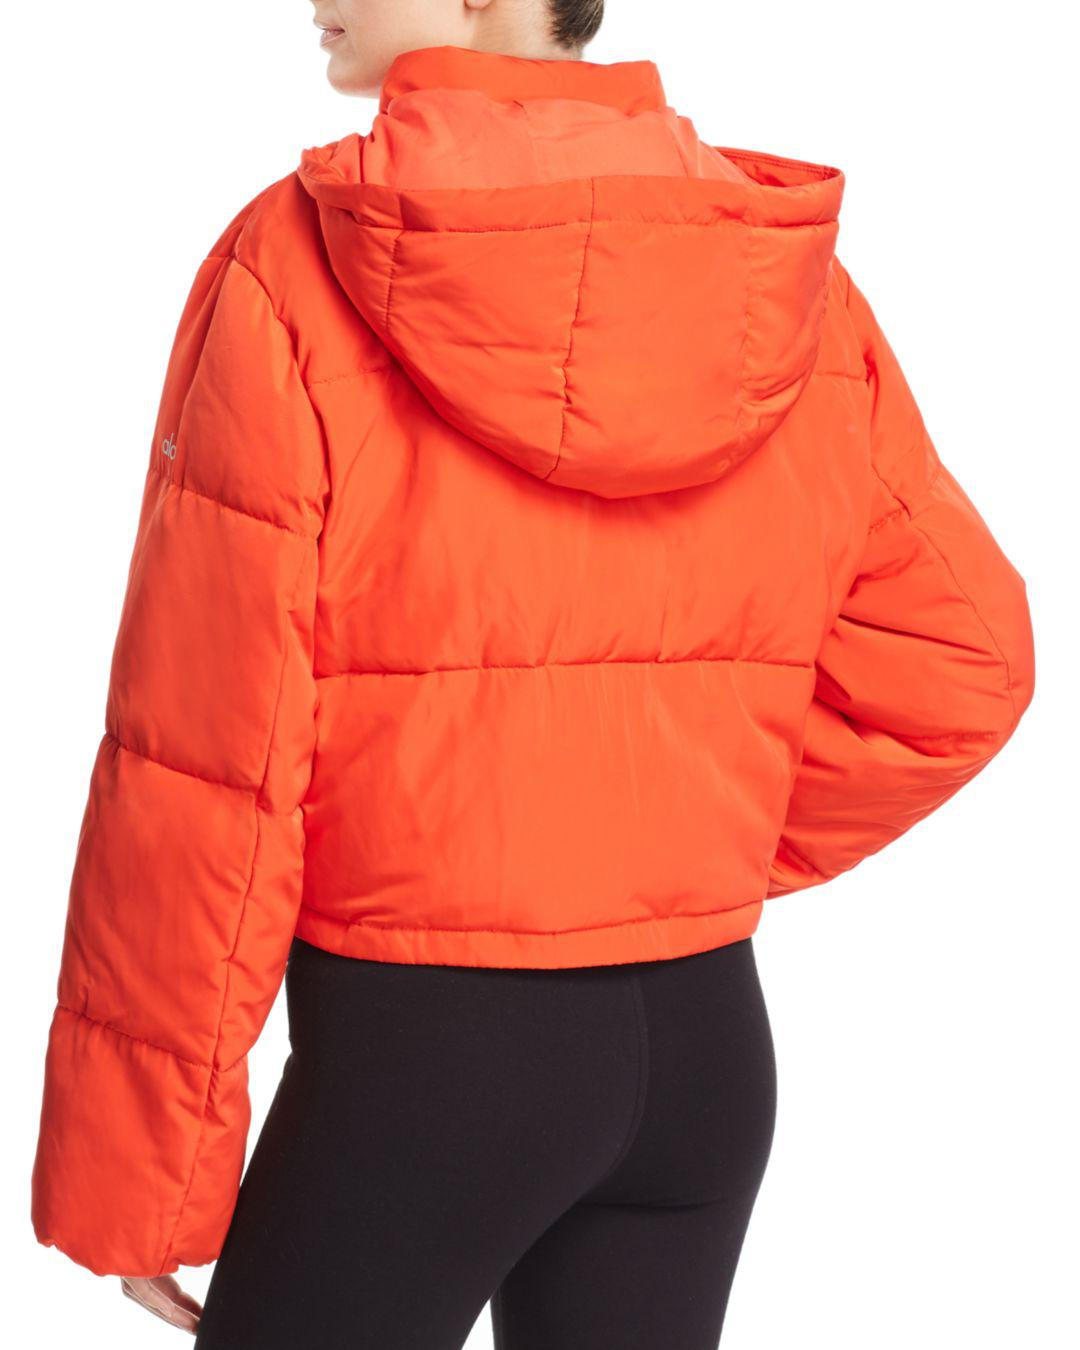 e833a093d1 Alo Yoga Introspective Cropped Puffer Jacket in Orange - Lyst